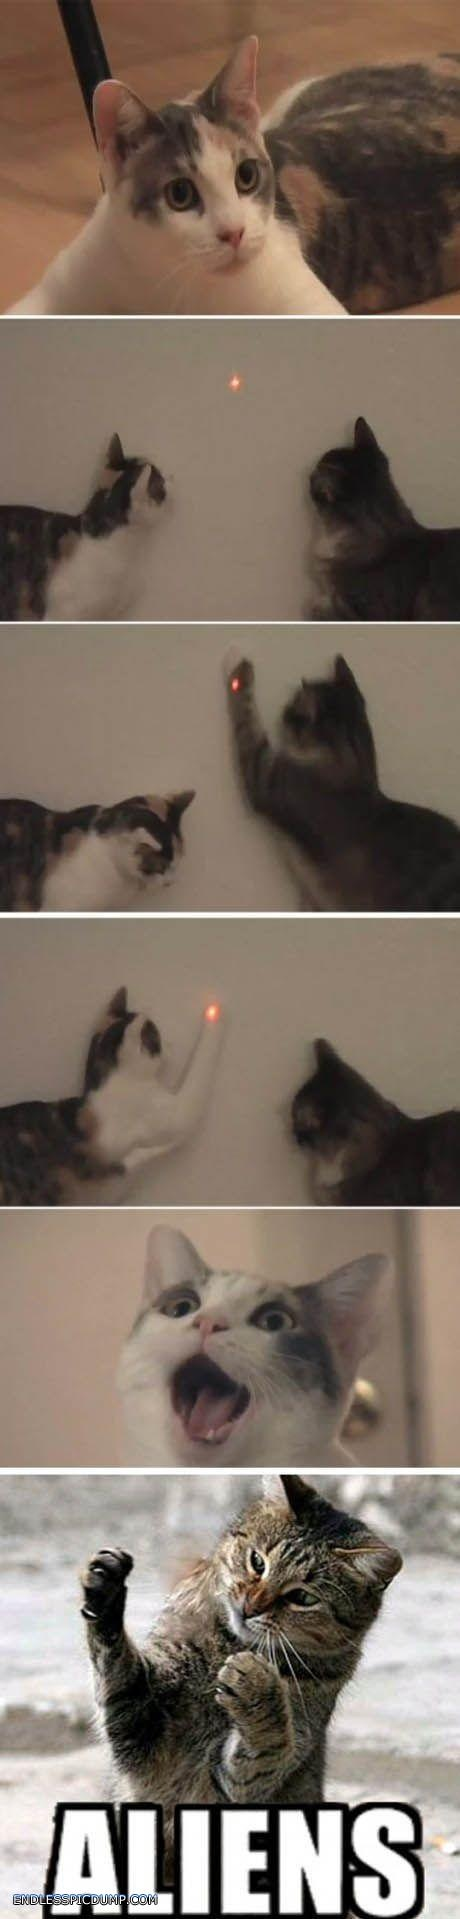 Cats Laserpointer Is Aliens Click the image for even more on EndlessPicdump.com